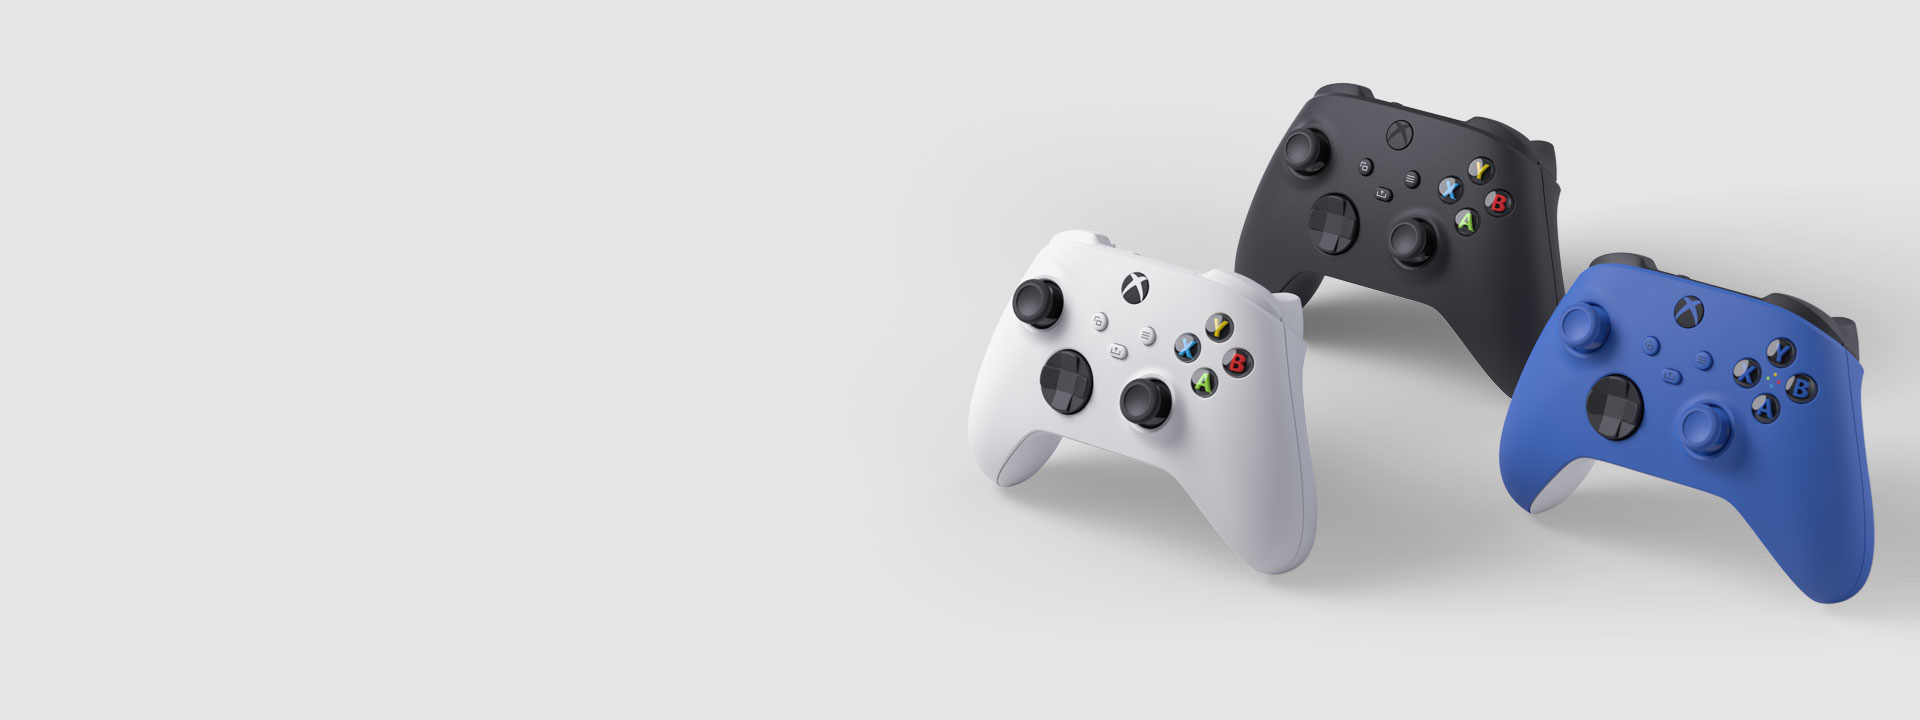 White, Black, and Blue Xbox Wireless Controllers